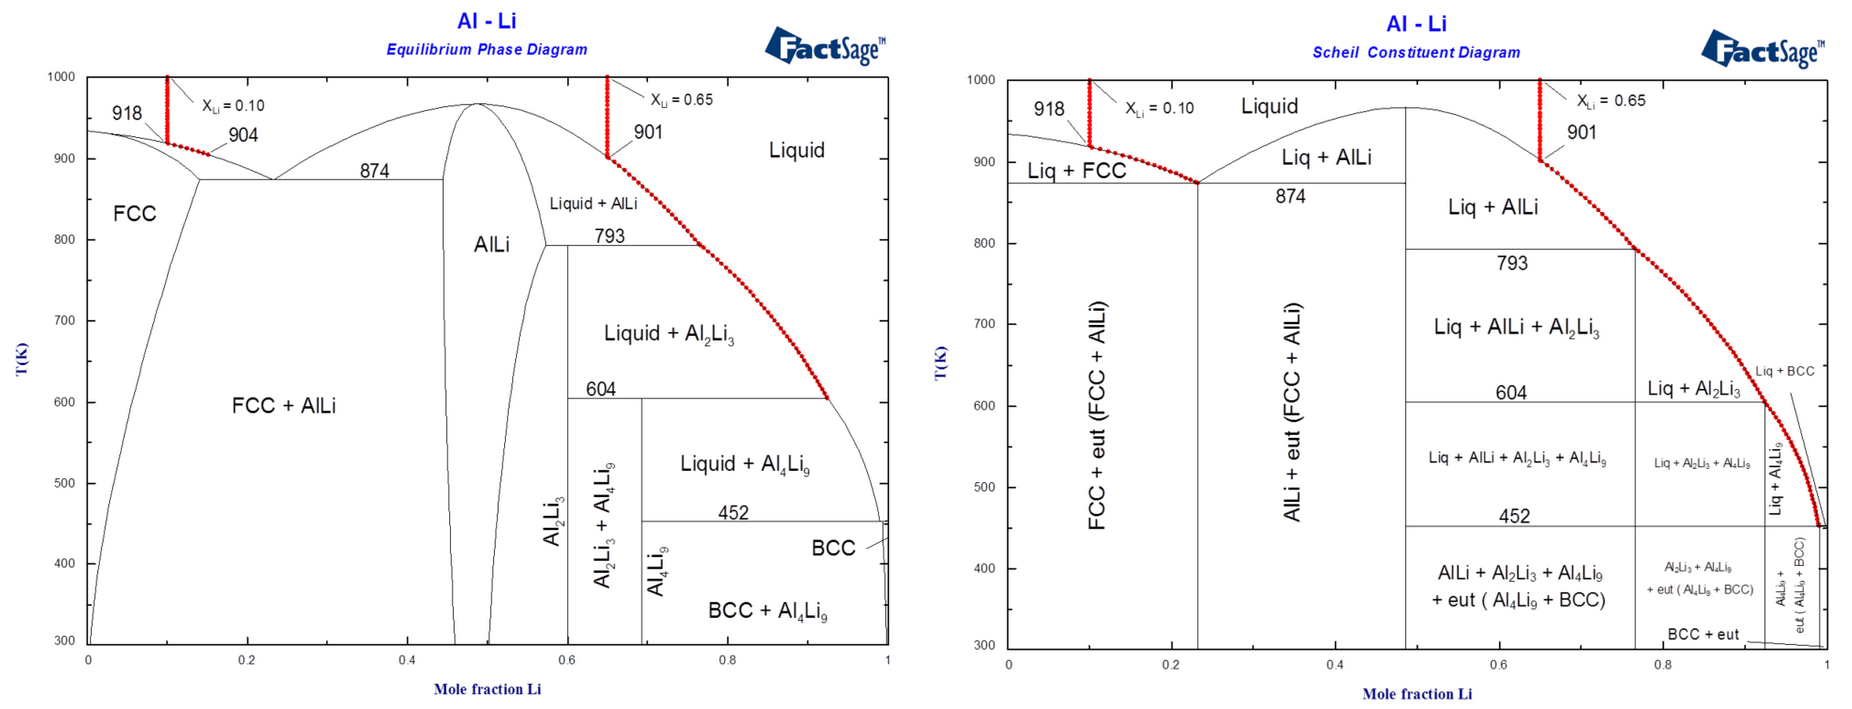 hight resolution of diagrams of the al li system illustrating solidification of alloys of compositions xli 0 10 and xli 0 65 1 calculated phase diagram and equilibrium